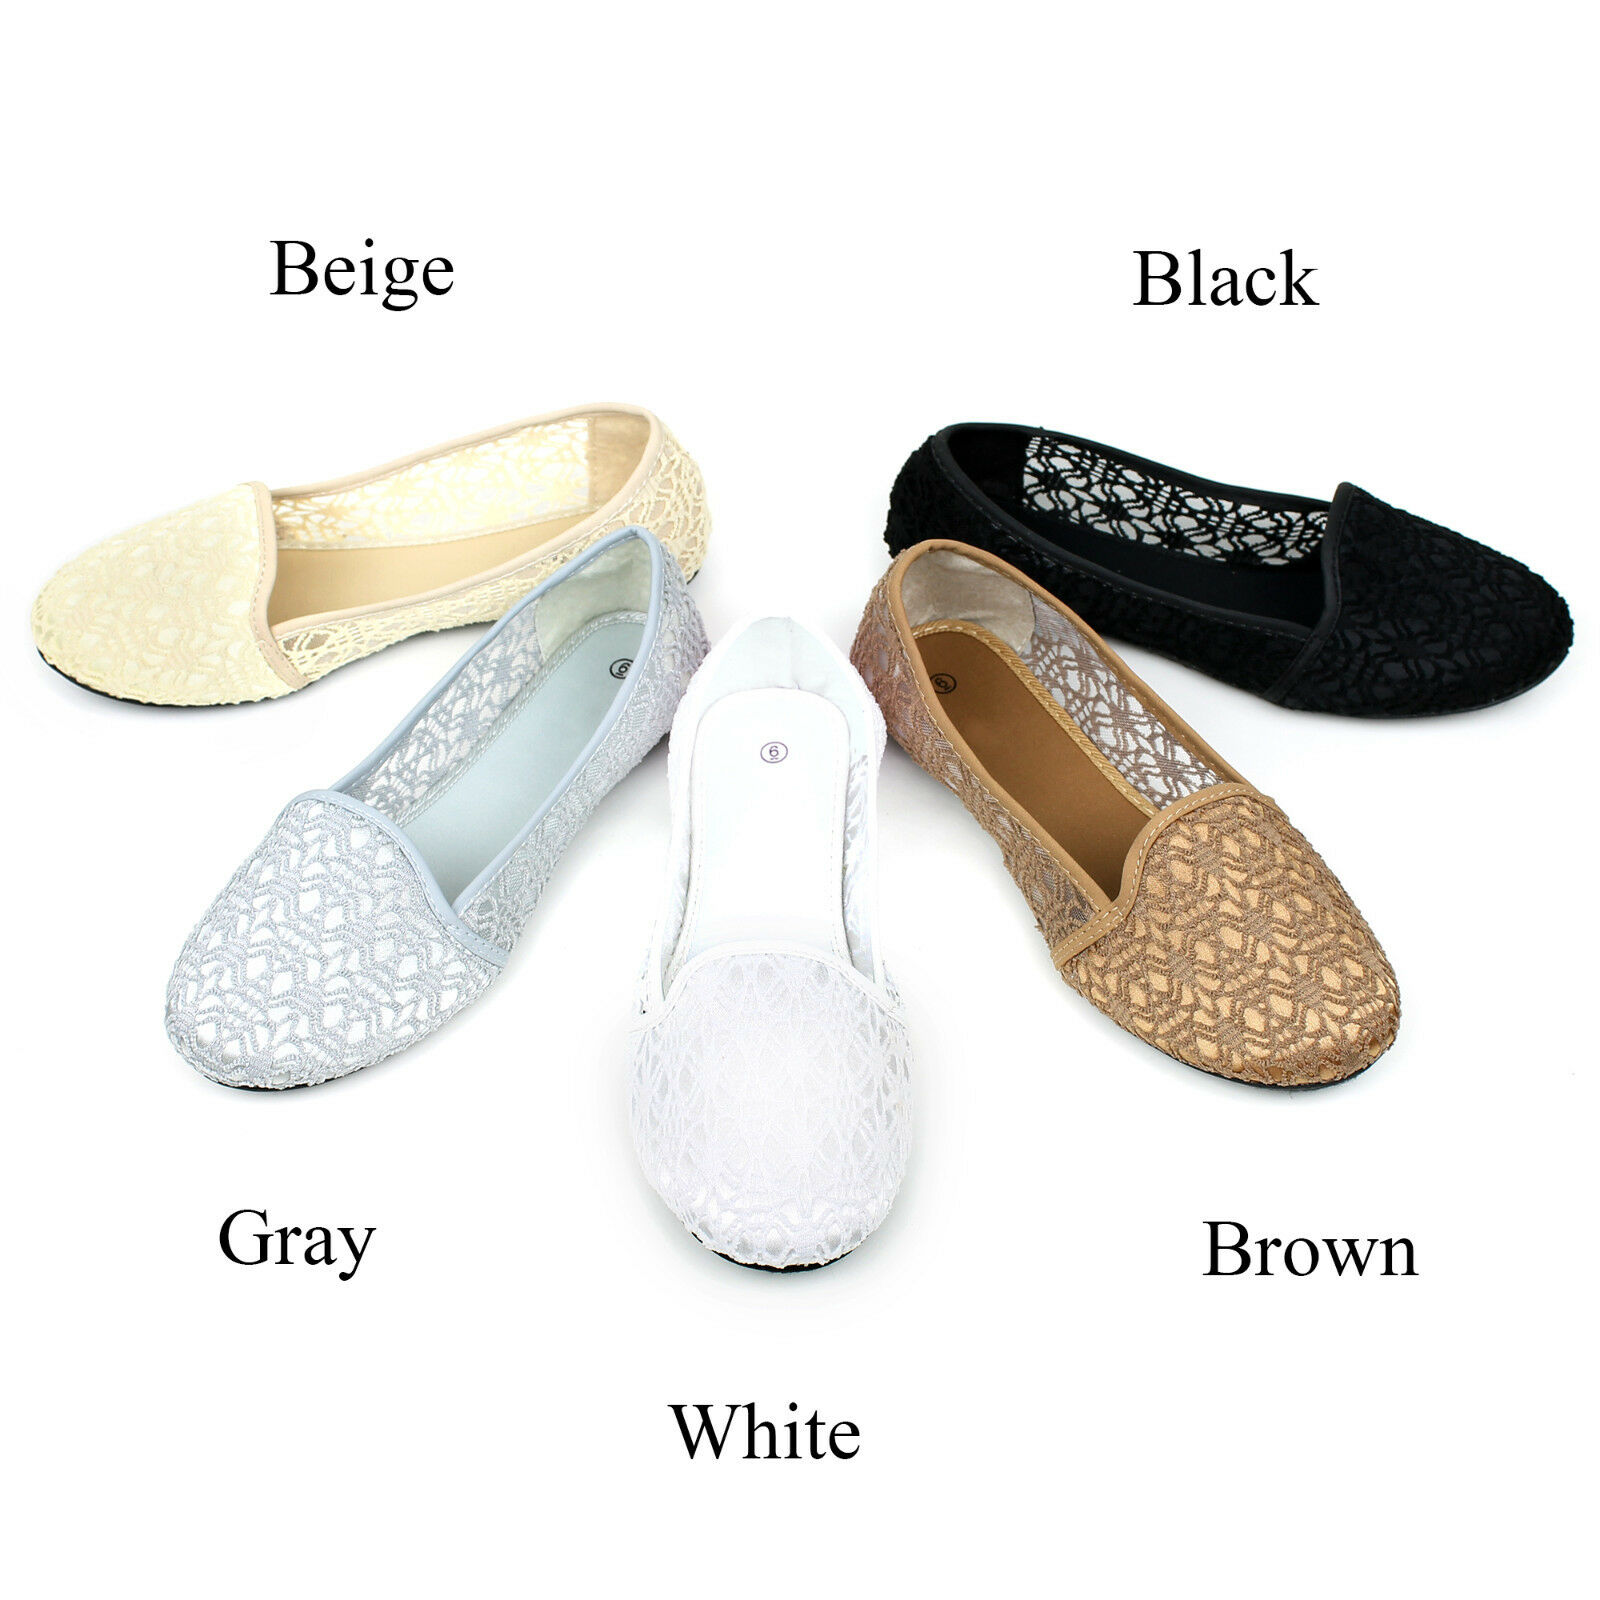 New Womens Lace Crochet Ballet Flat Comfy Slip On Loafers Ballerina Flats Shoes